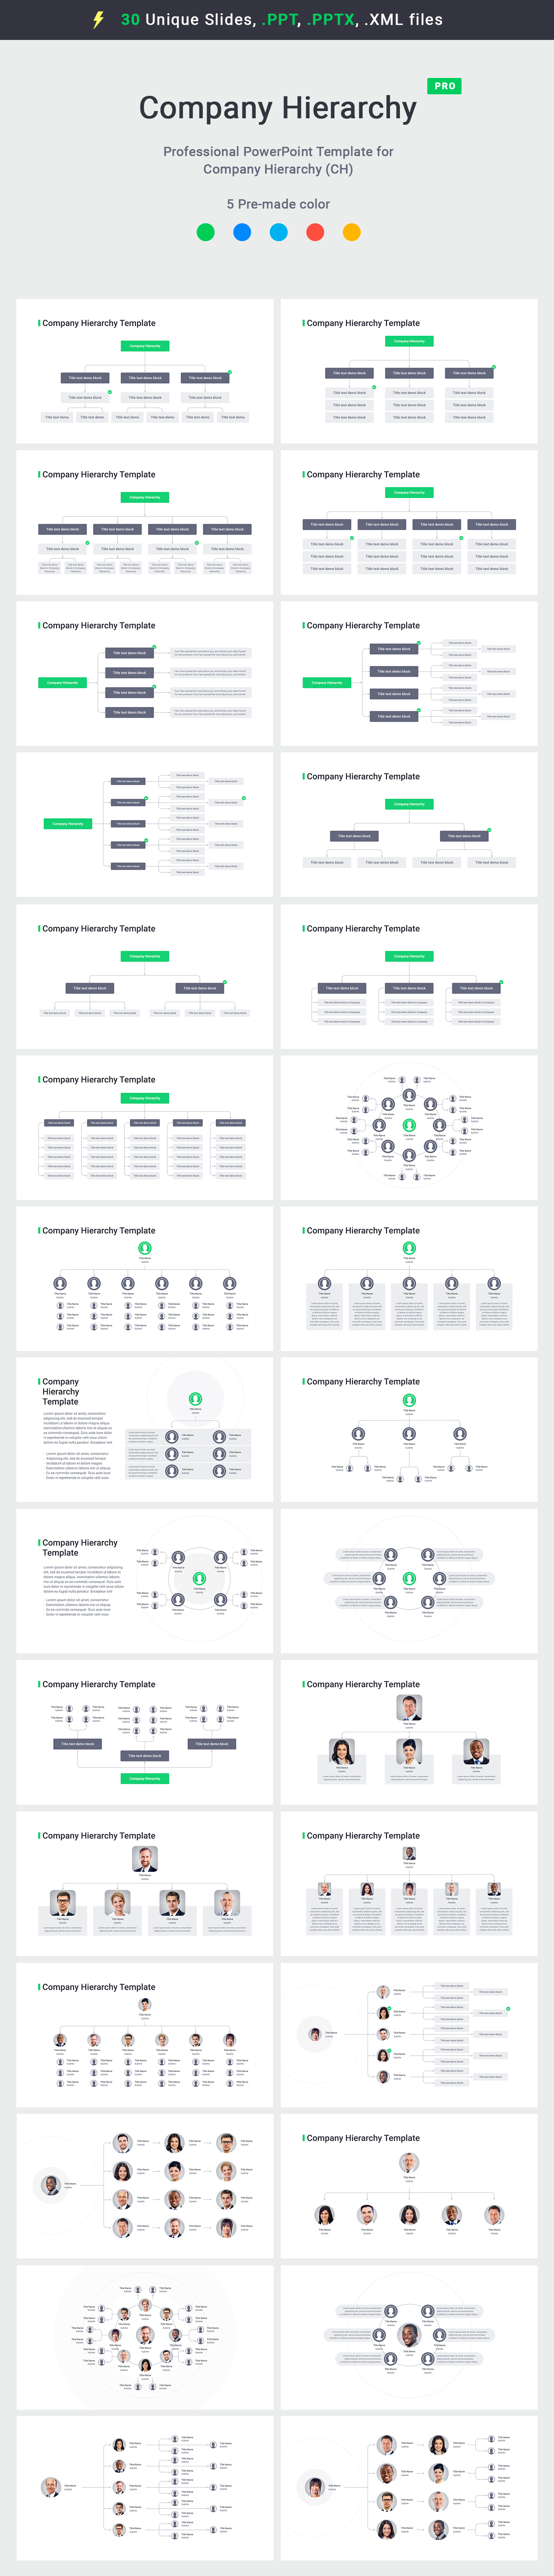 organizational charts template for powerpoint